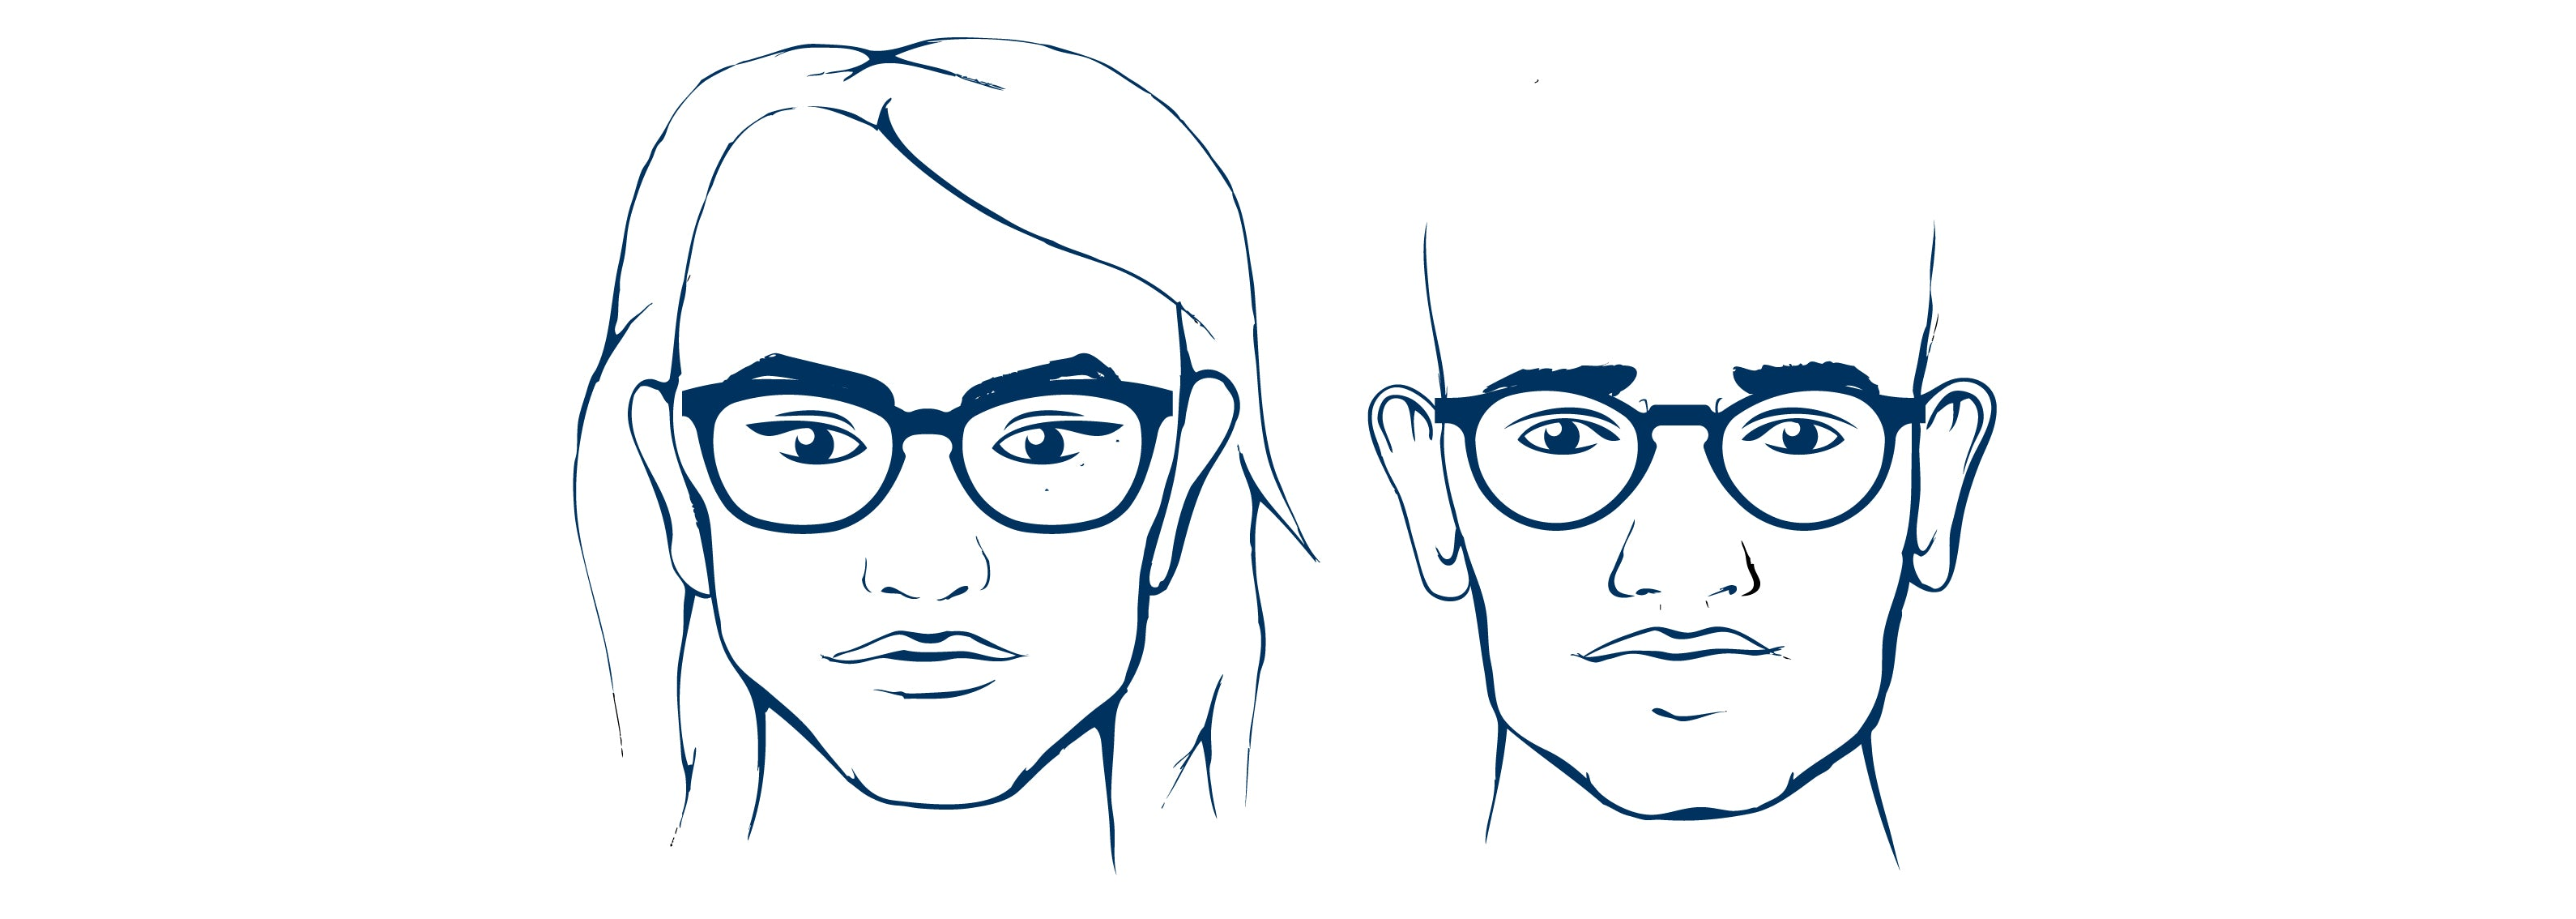 Square face shape - glasses that suit